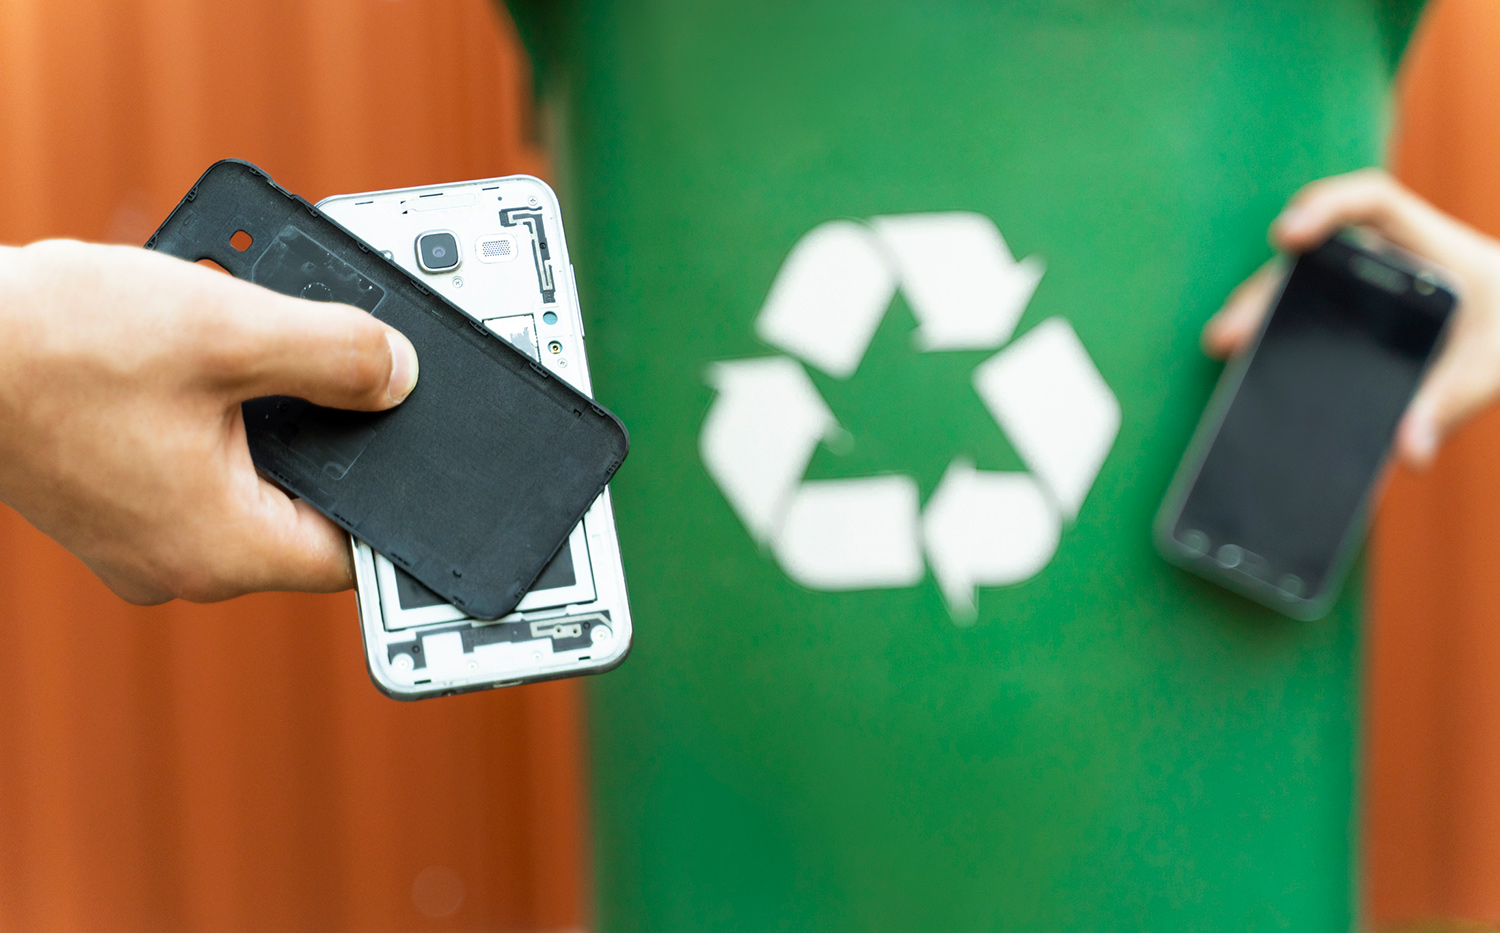 Recyclage Bestbuy Appareils Electroniques